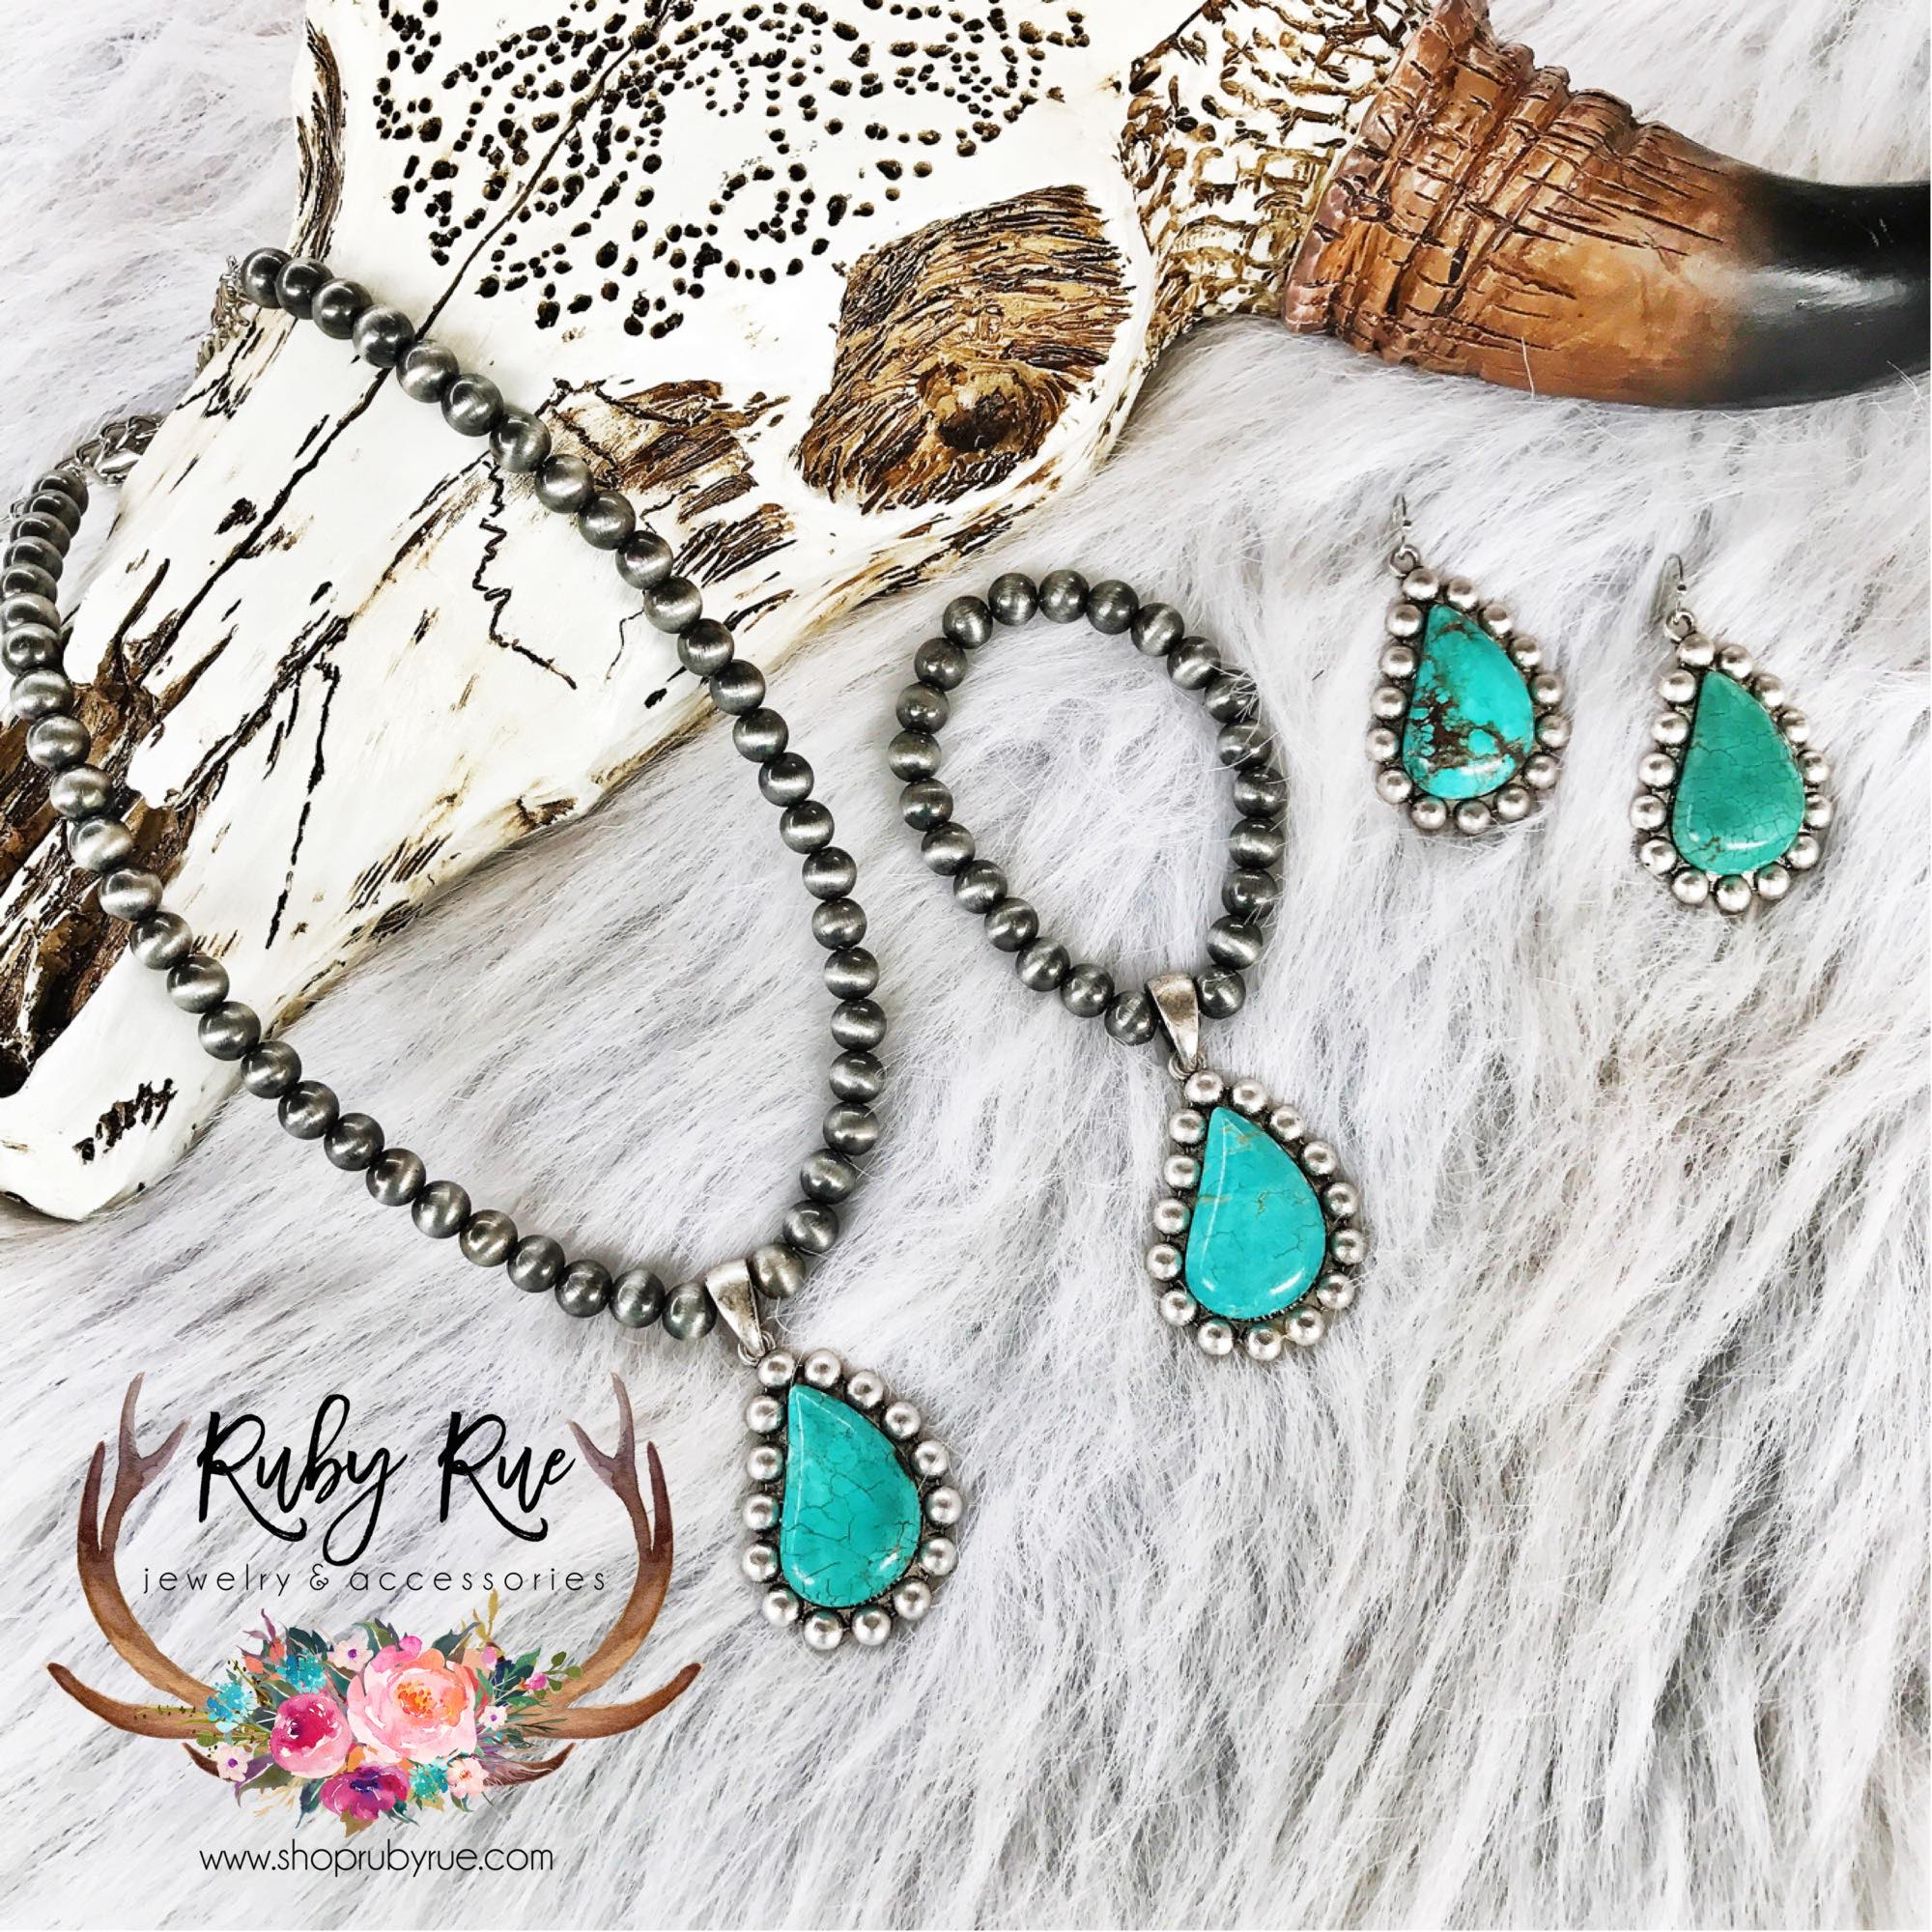 Large Turquoise Stone Bracelet - Ruby Rue Jewelry & Accessories